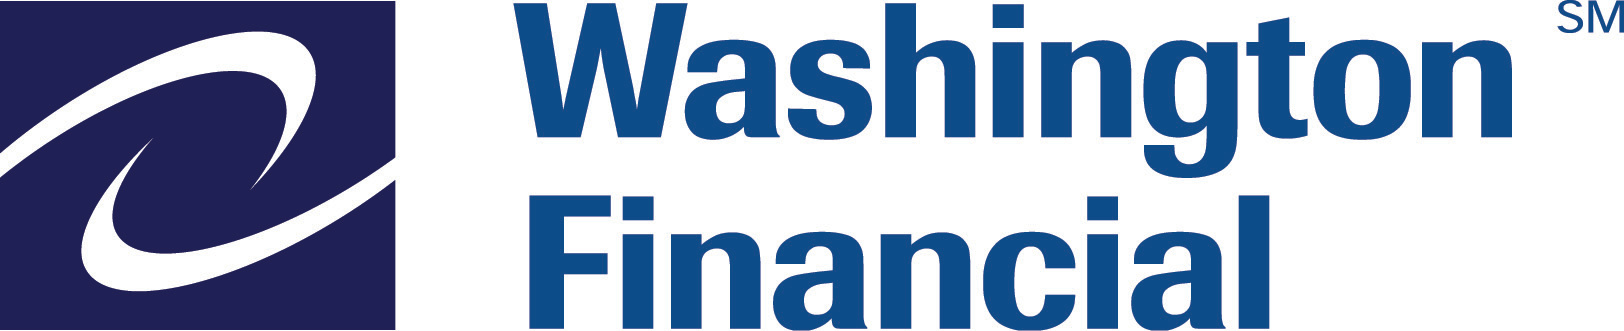 Washington Financial